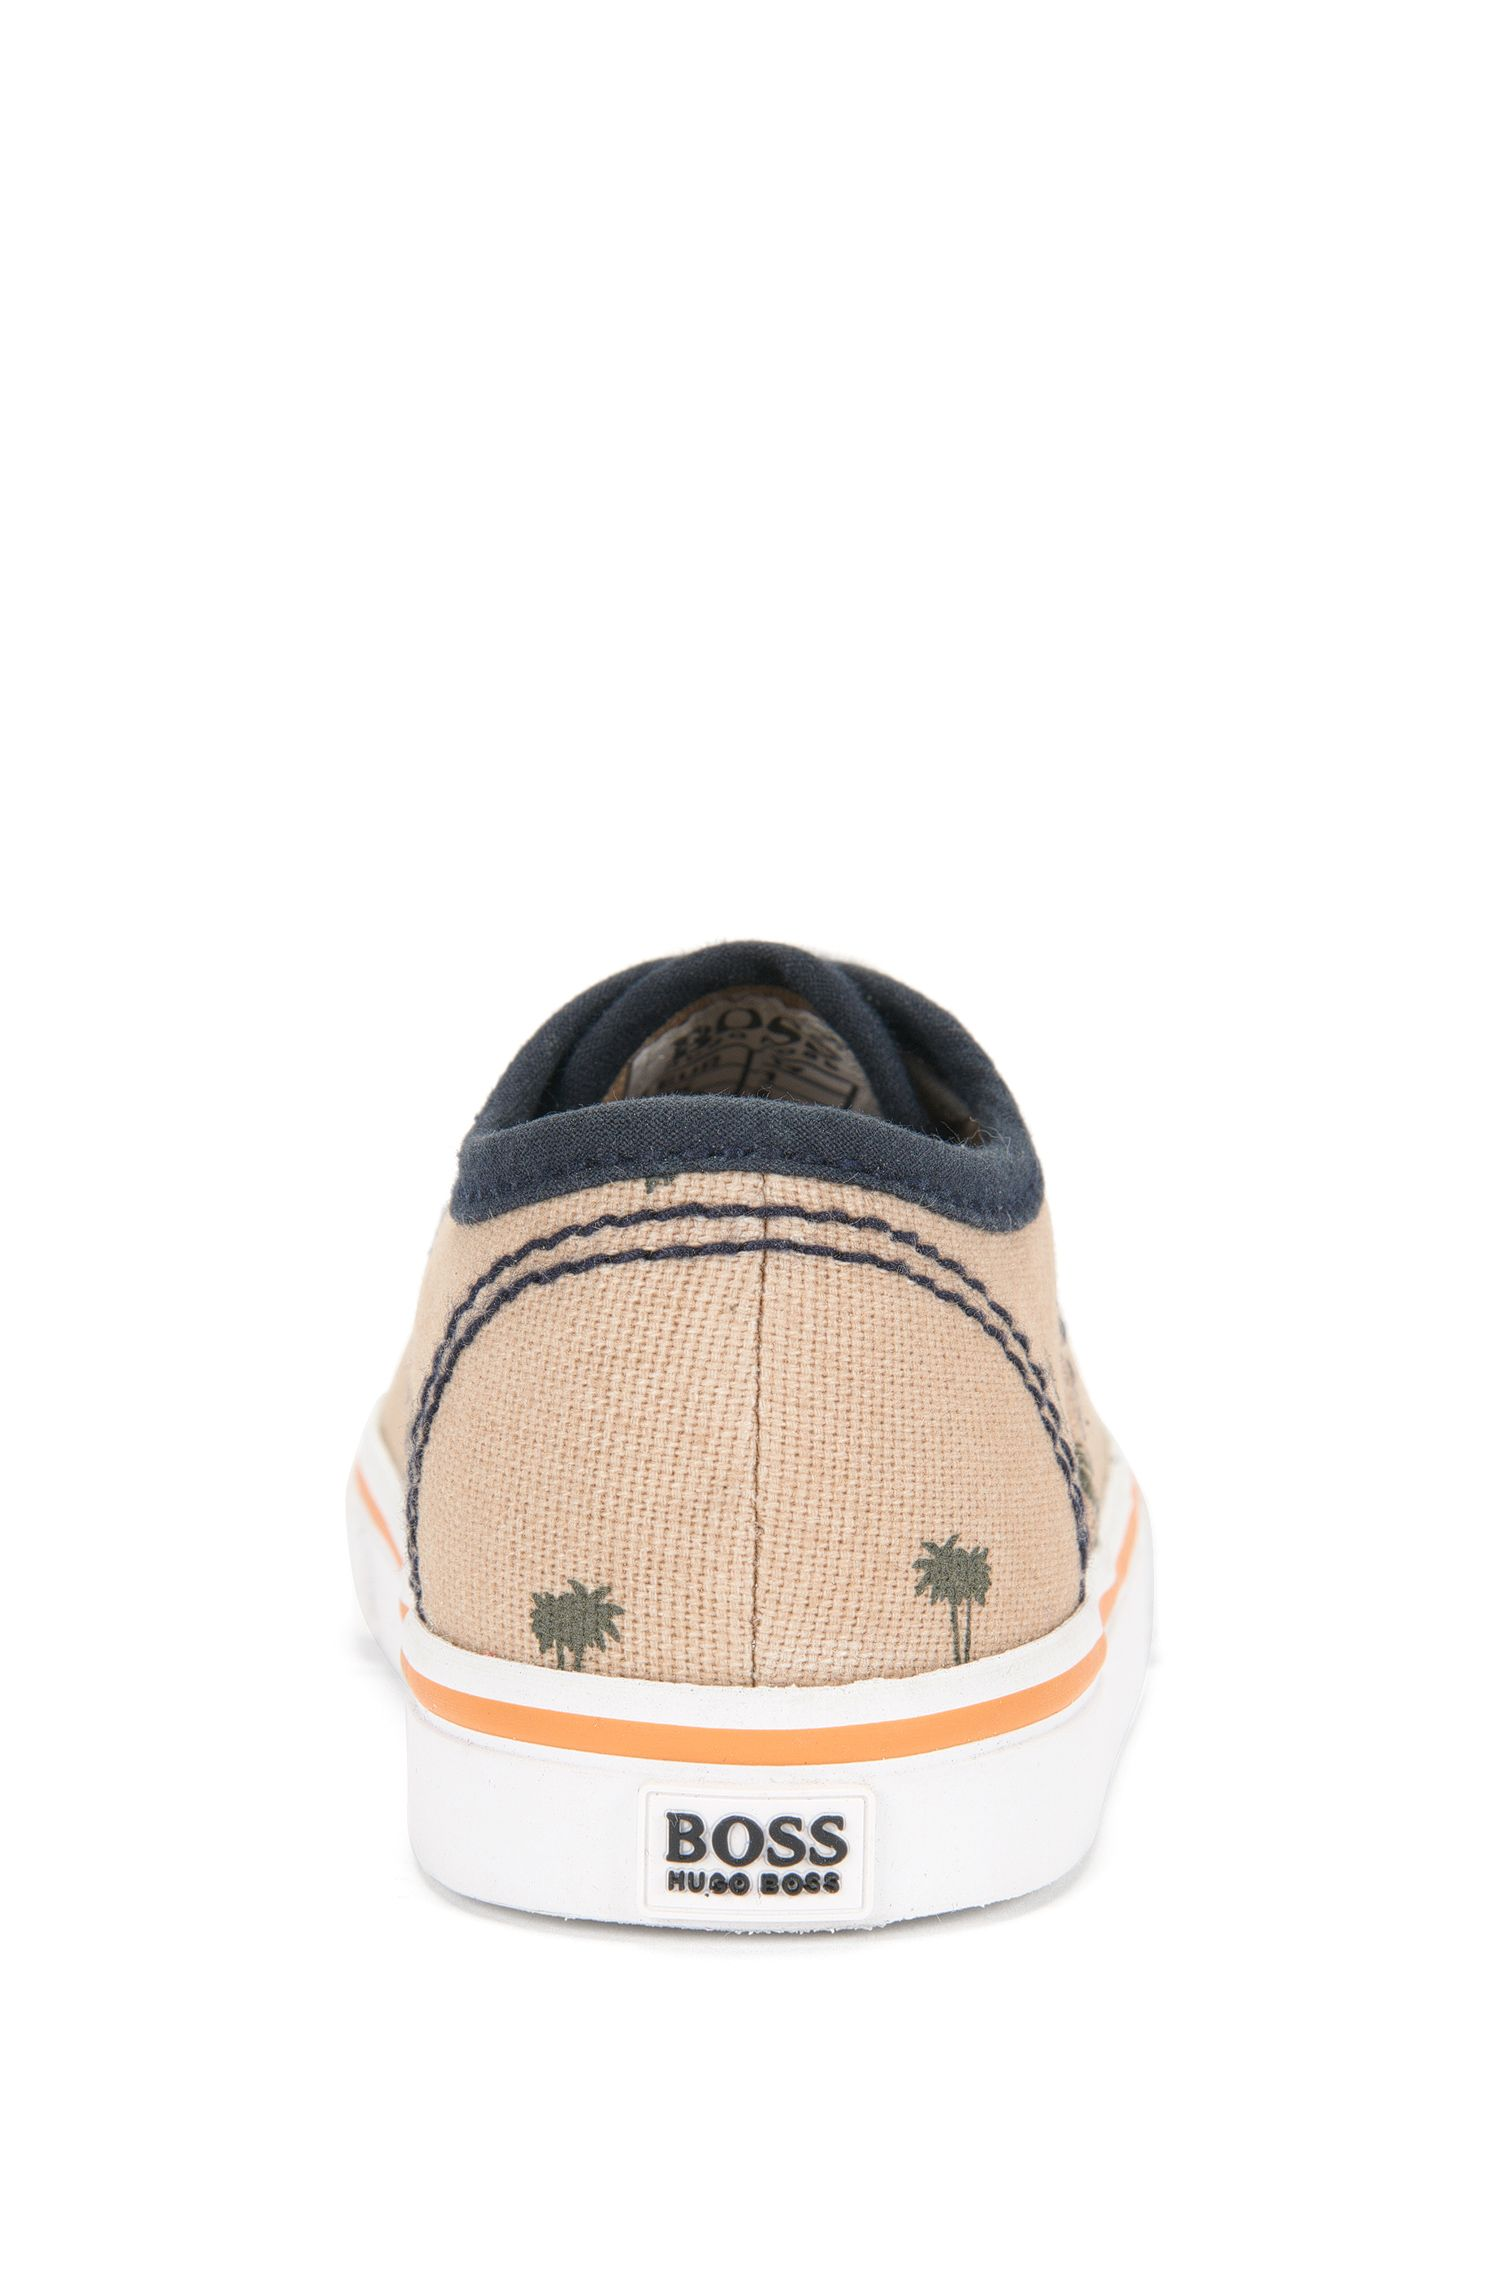 'J09083' | Toddler Cotton Lace-up Sneakers